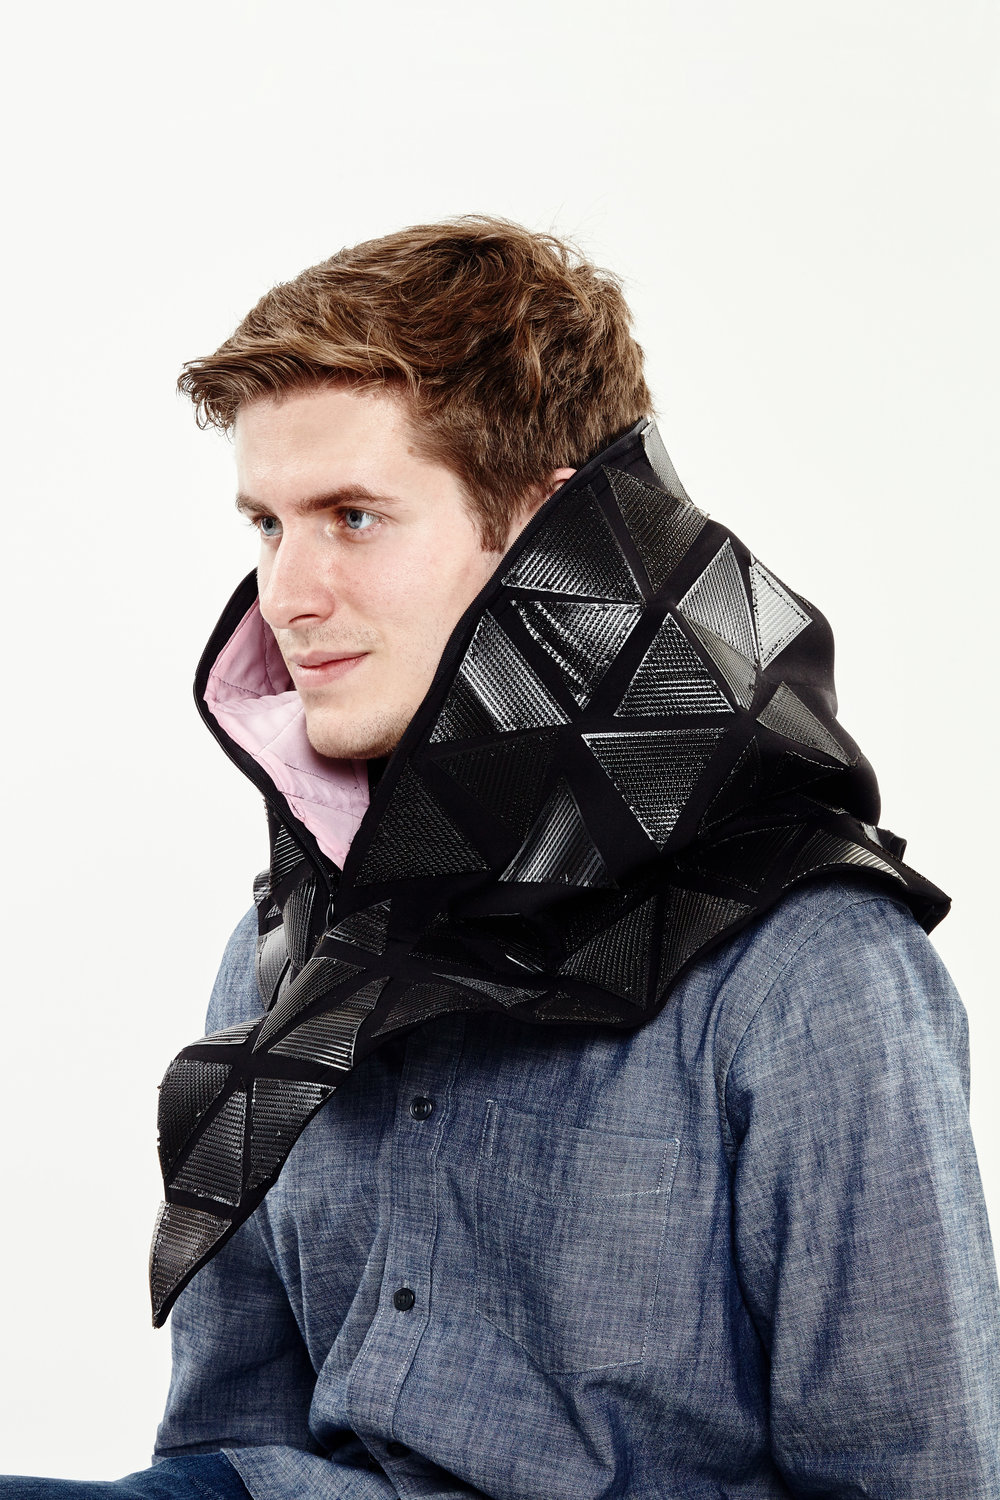 The Tech Liberator isolation cloak is a garment that allows users to avoid being taken hostage by their distractions.